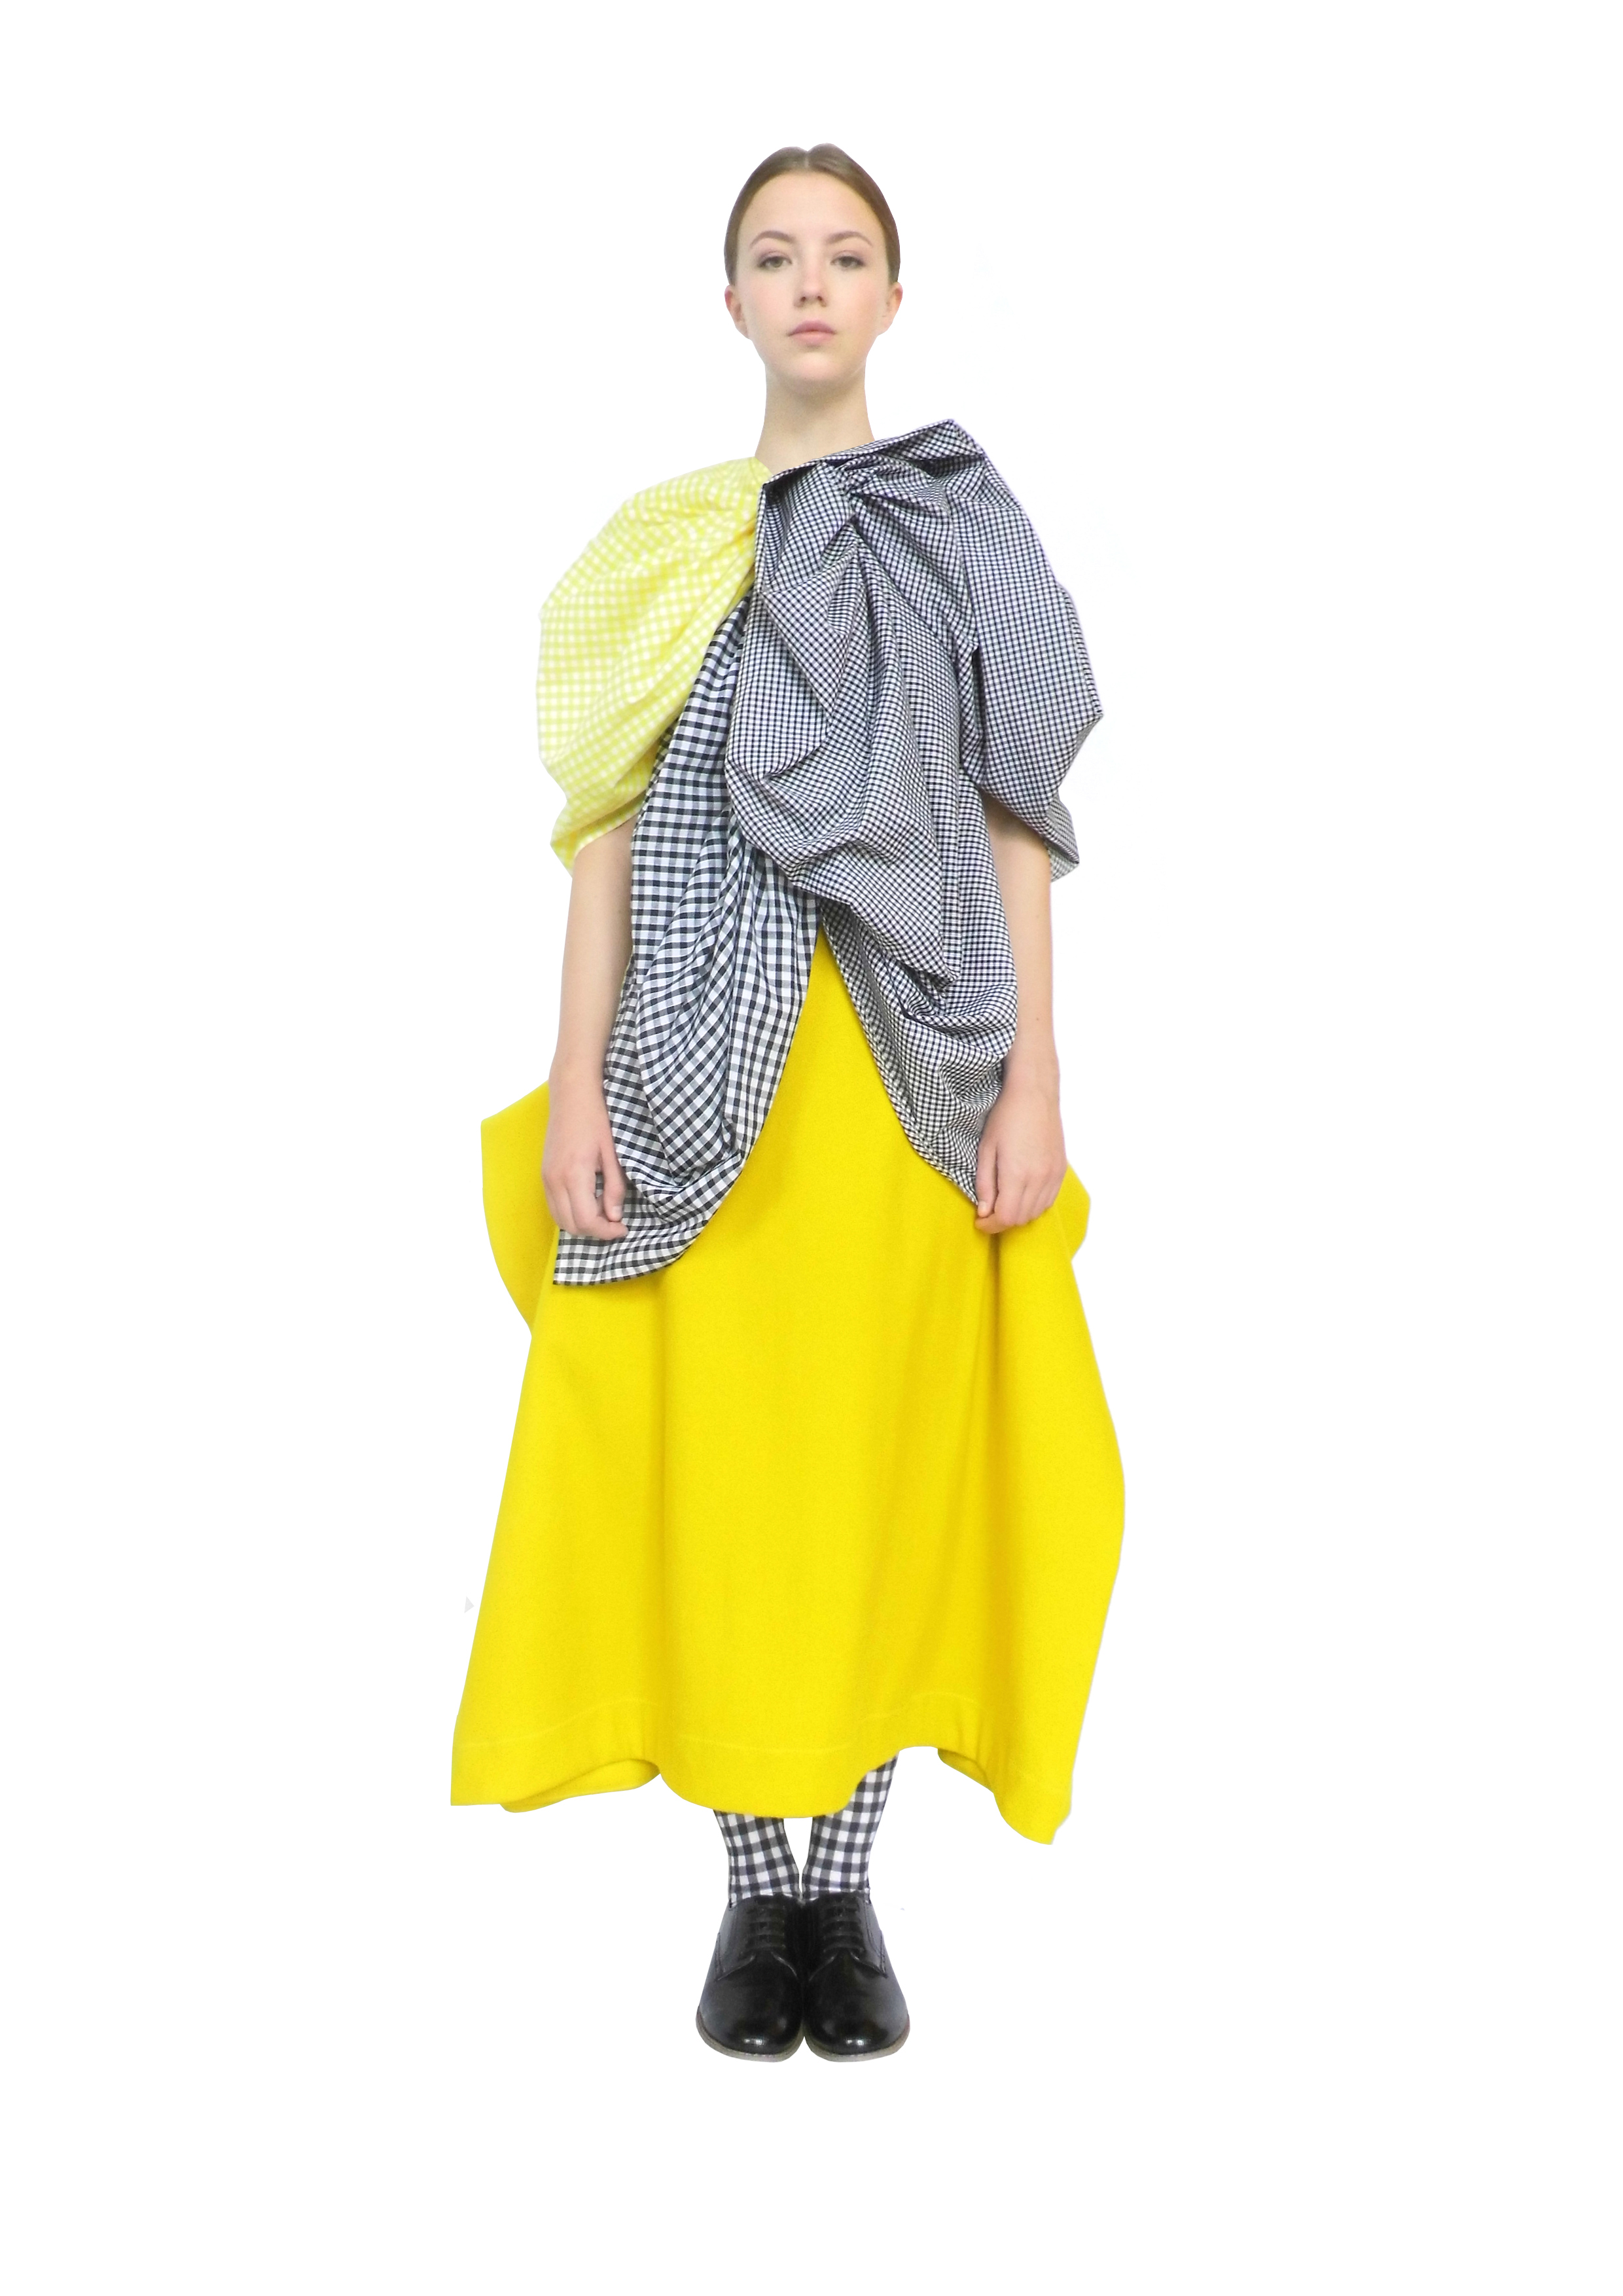 Tri rosette blouse & blanket skirt